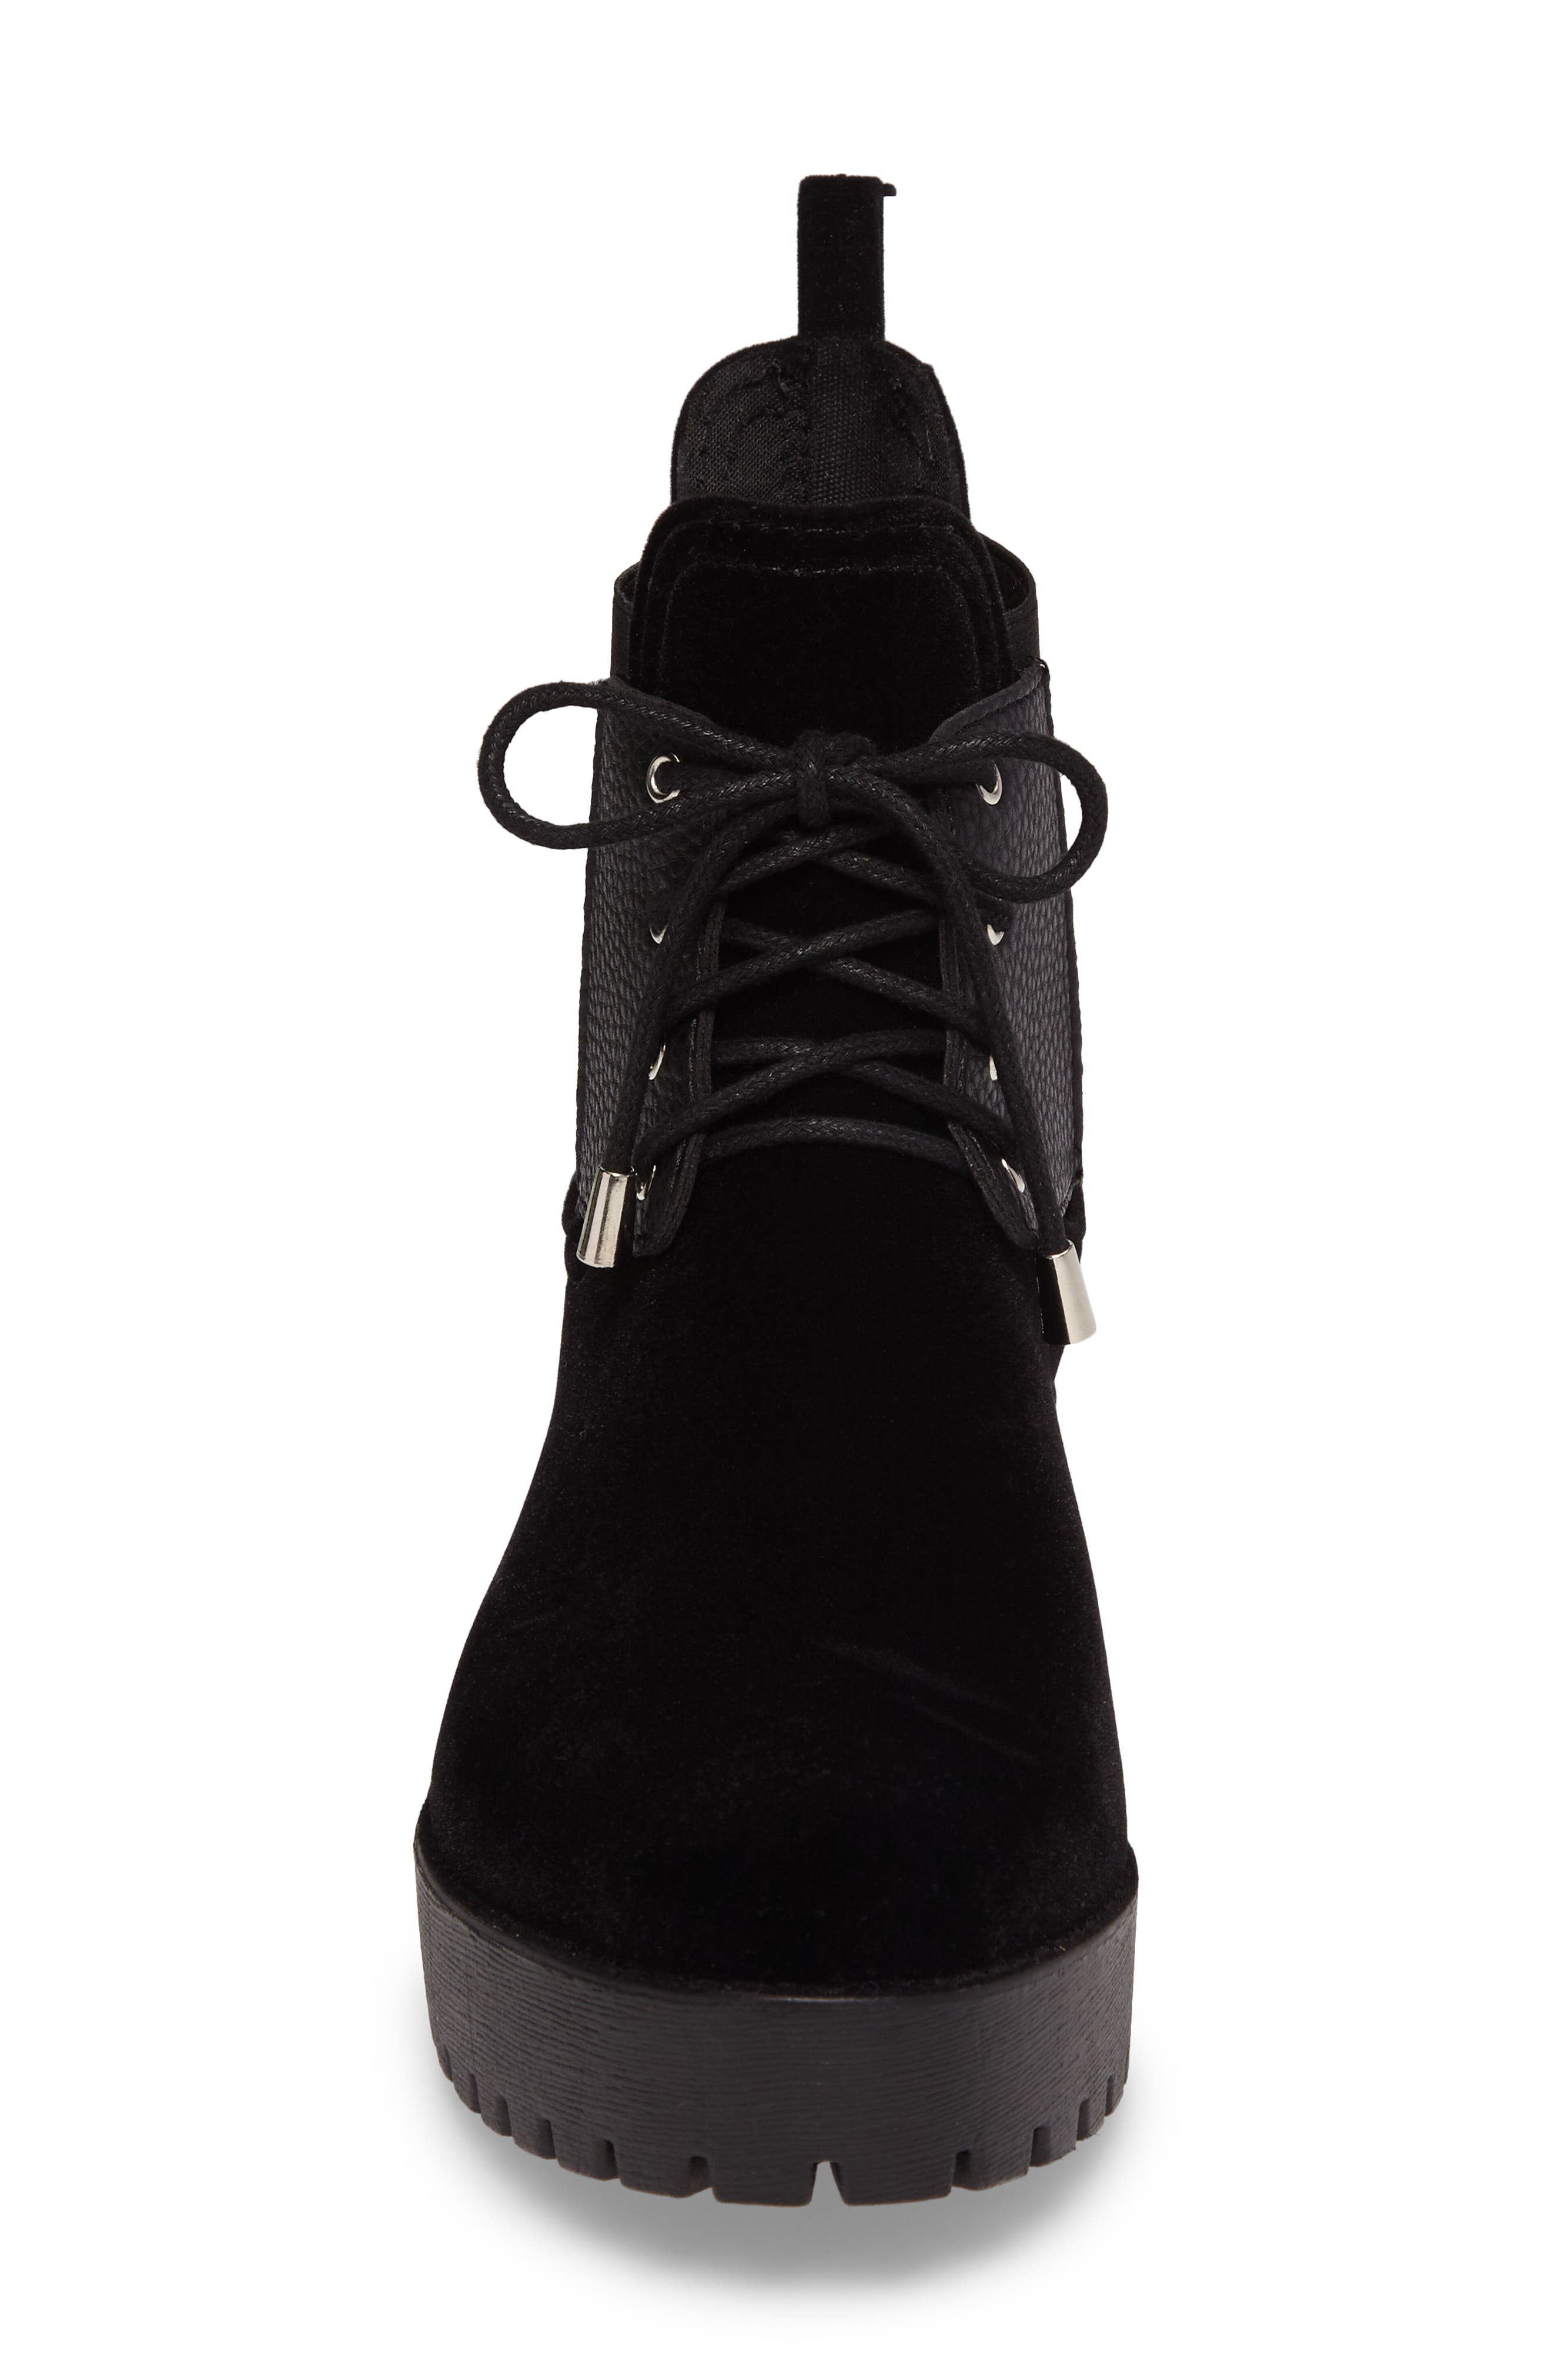 Leeds Lace-Up Waterproof Boot,                             Alternate thumbnail 4, color,                             Black